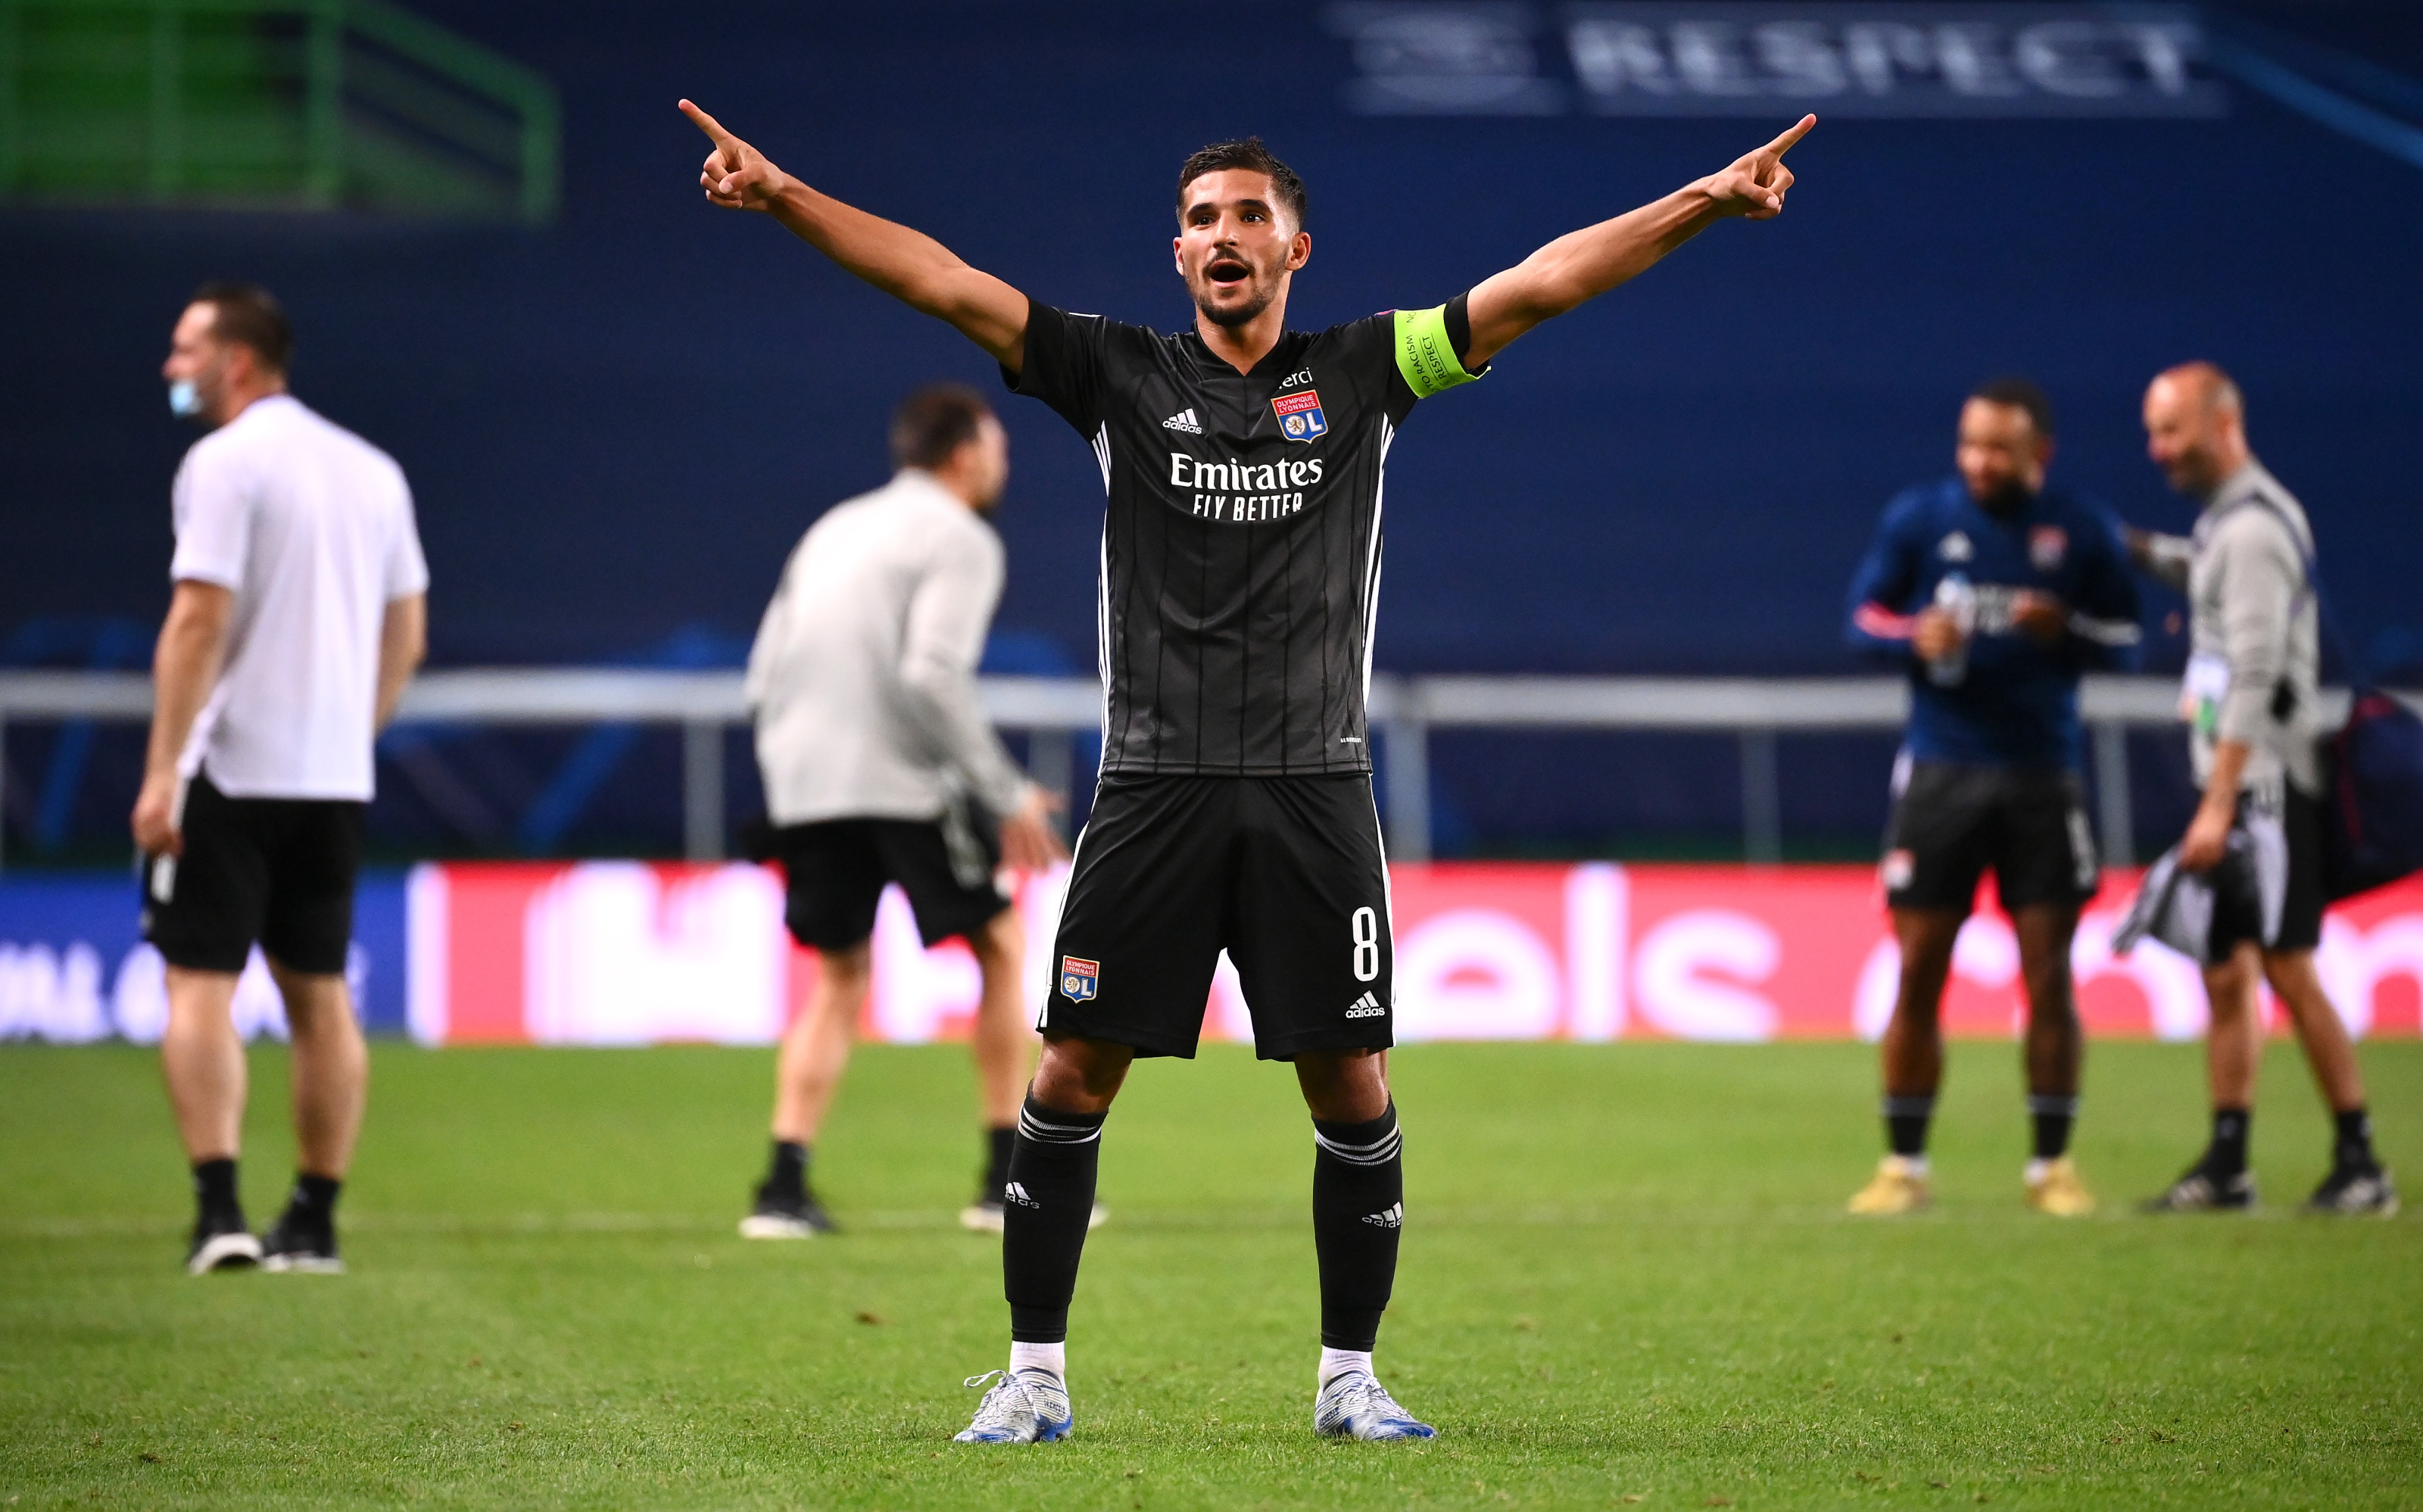 Barcelona should opt to sign Houssem Aouar from Lyon